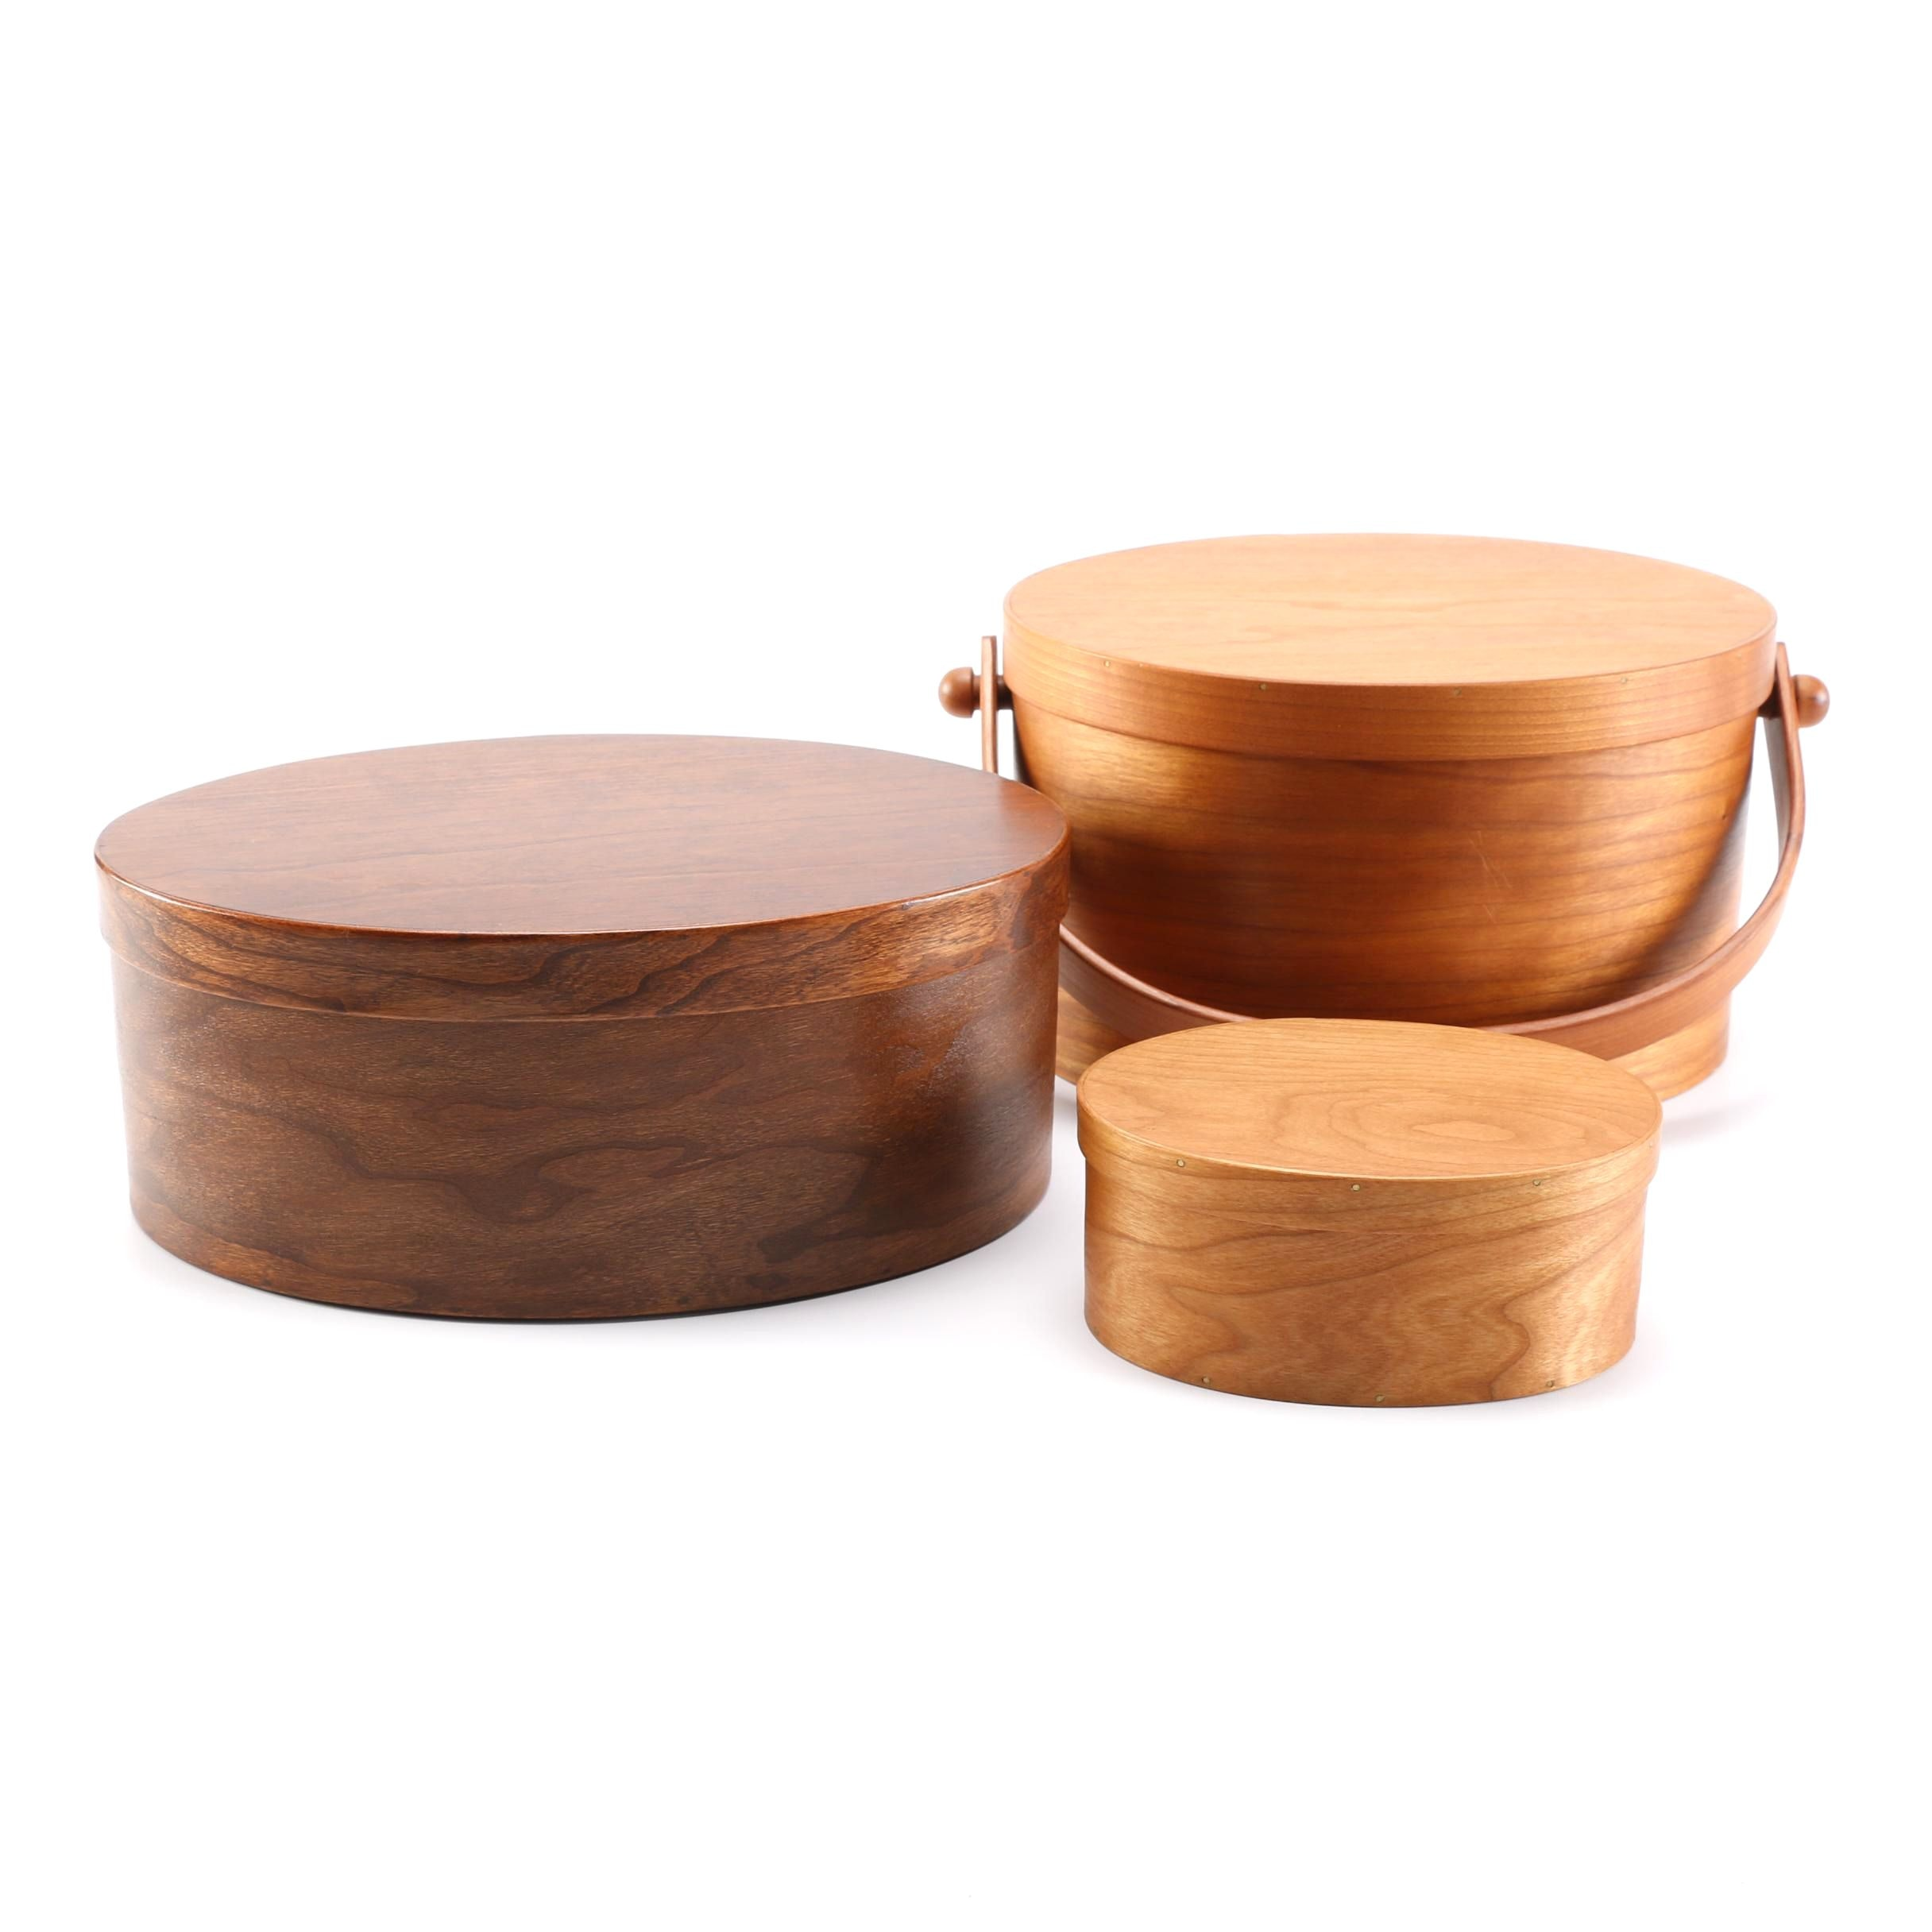 Wooden Shaker Sewing Baskets and Button Box